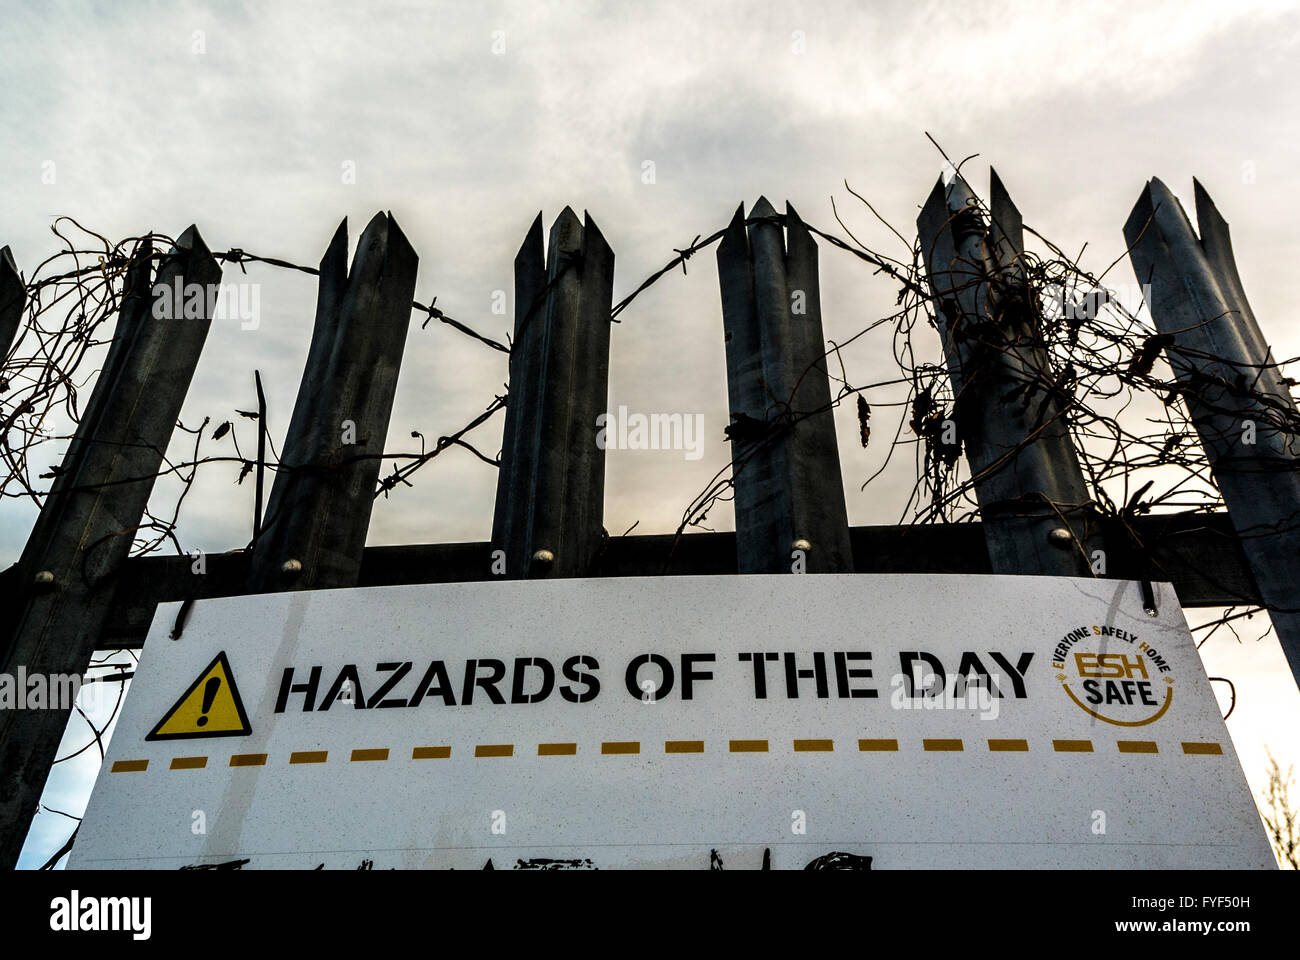 Hazards of the day sign on building site - Stock Image